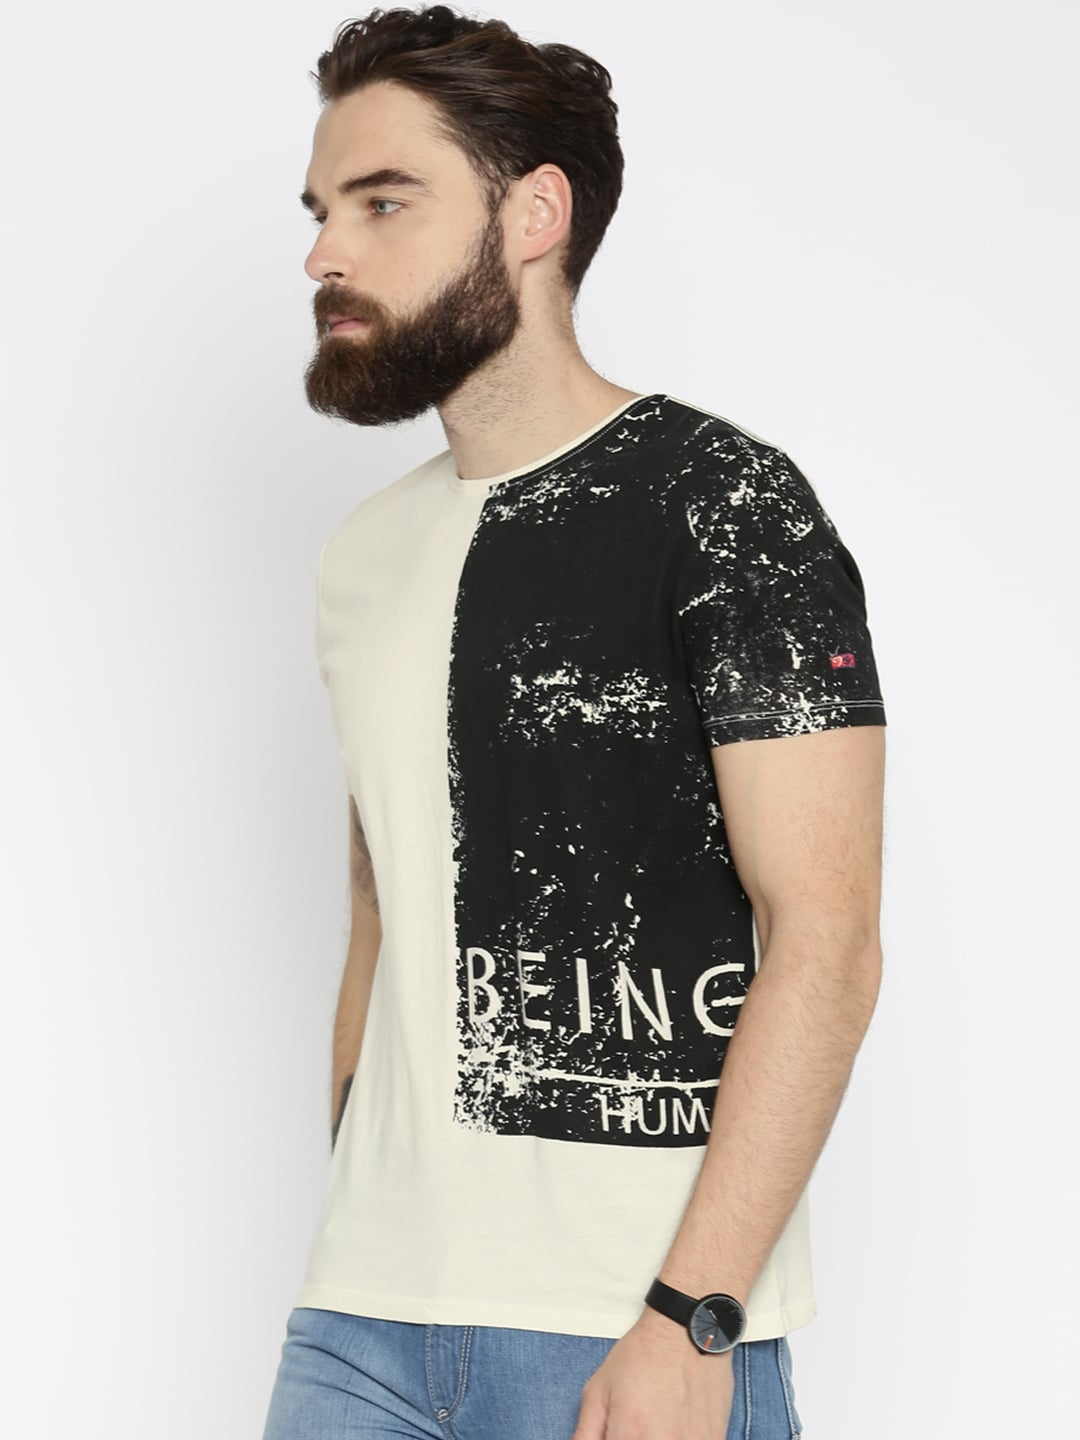 Design your own t shirt india cash on delivery - Design Your Own T Shirt India Cash On Delivery 57